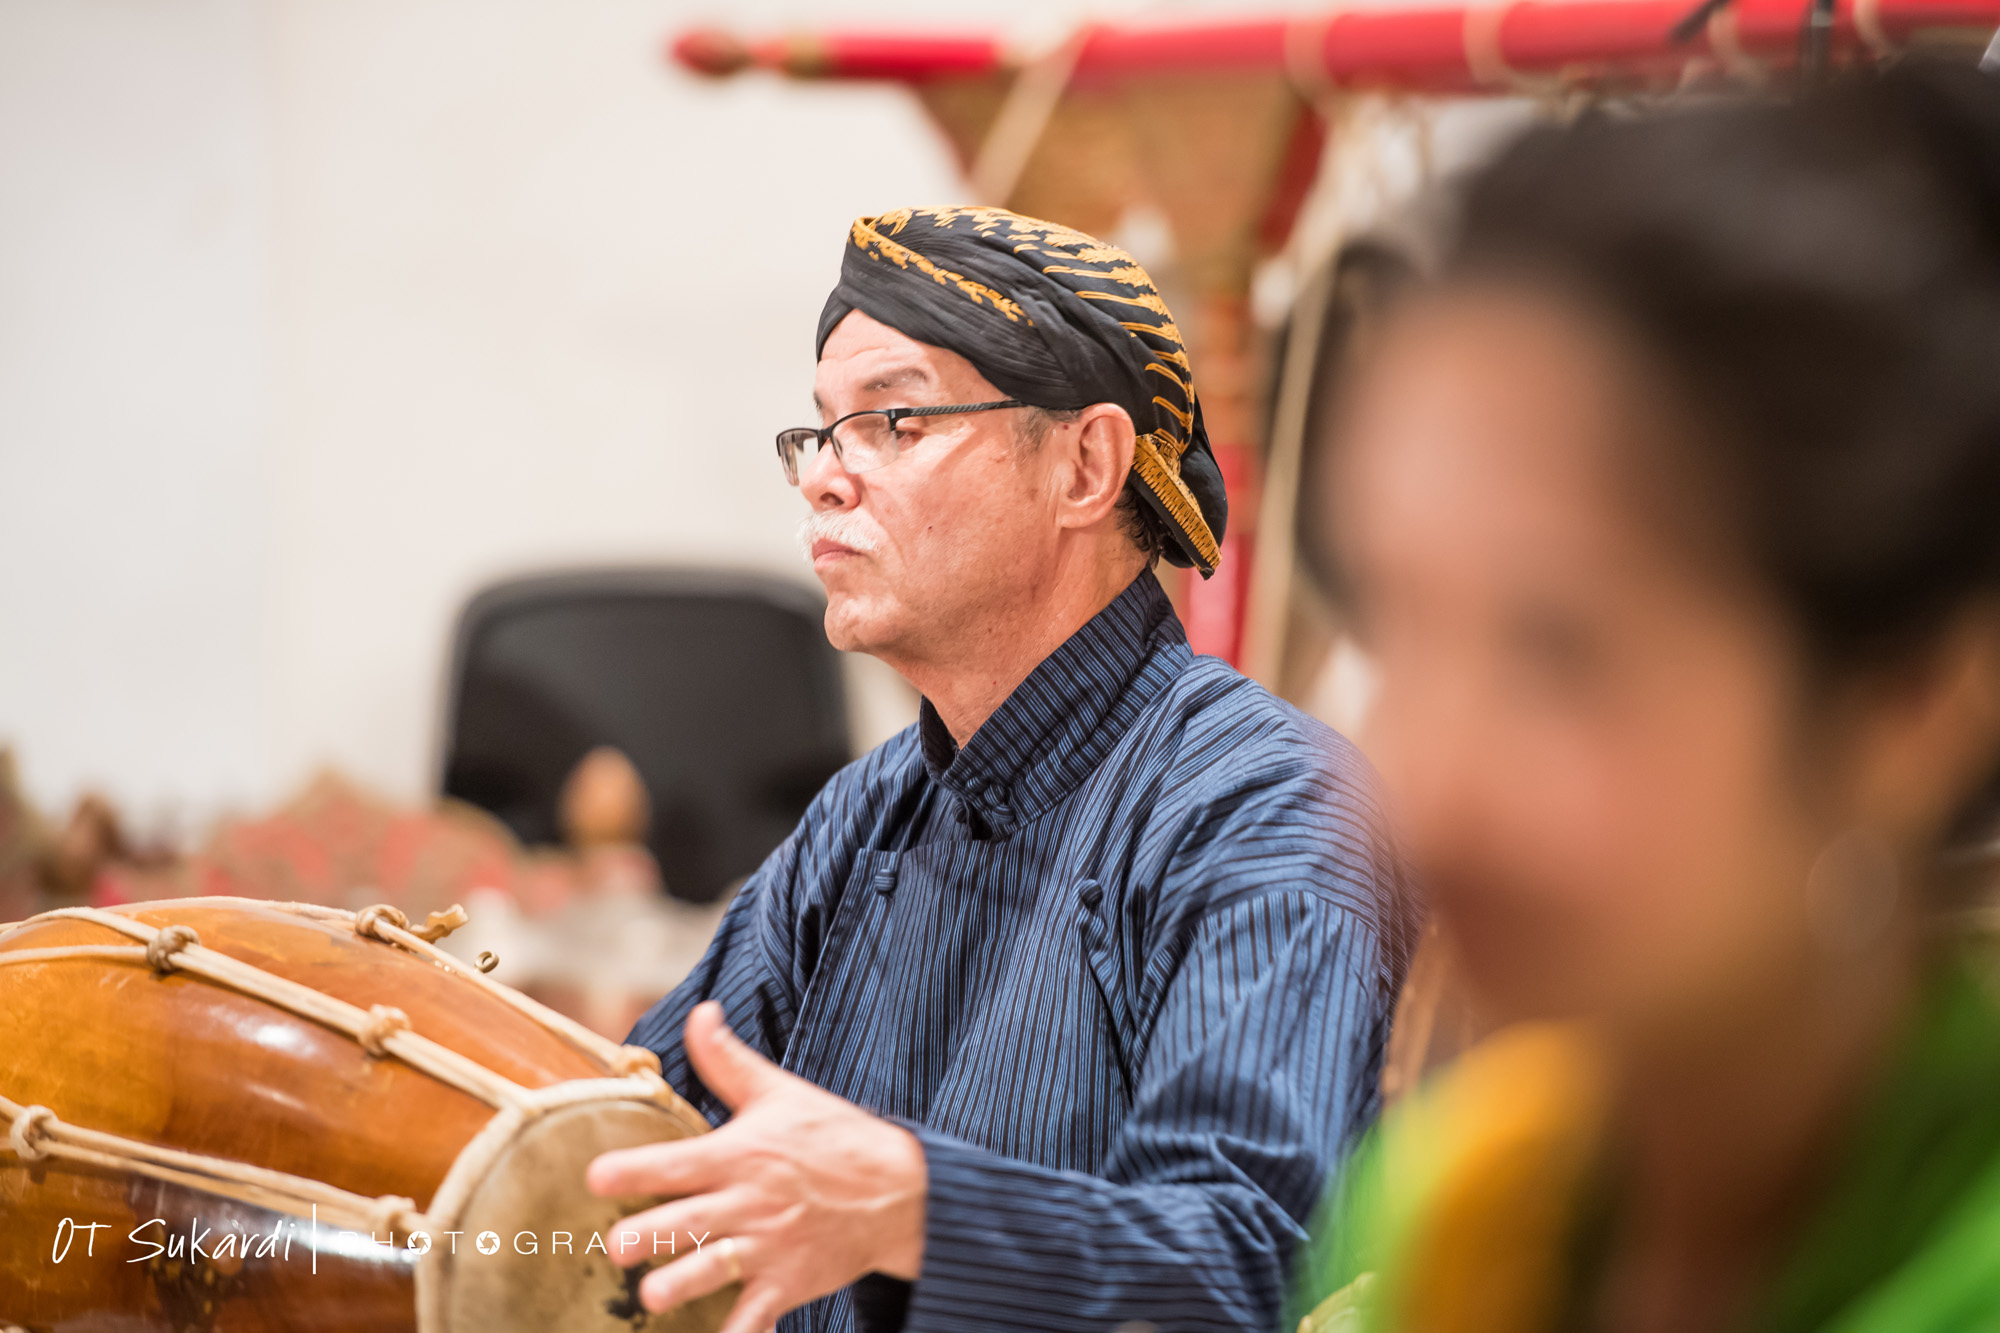 close up of man playing drum